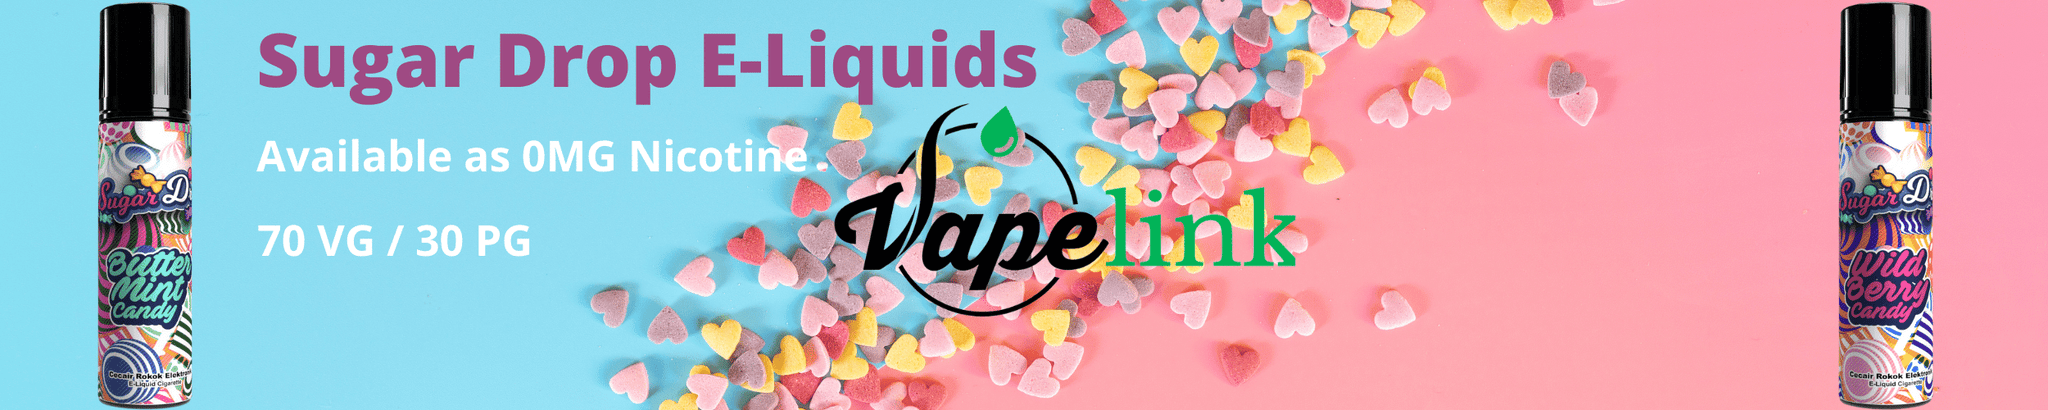 Sugar Drop Candy E-Liquids in Australia | Candy Flavoured E Juice